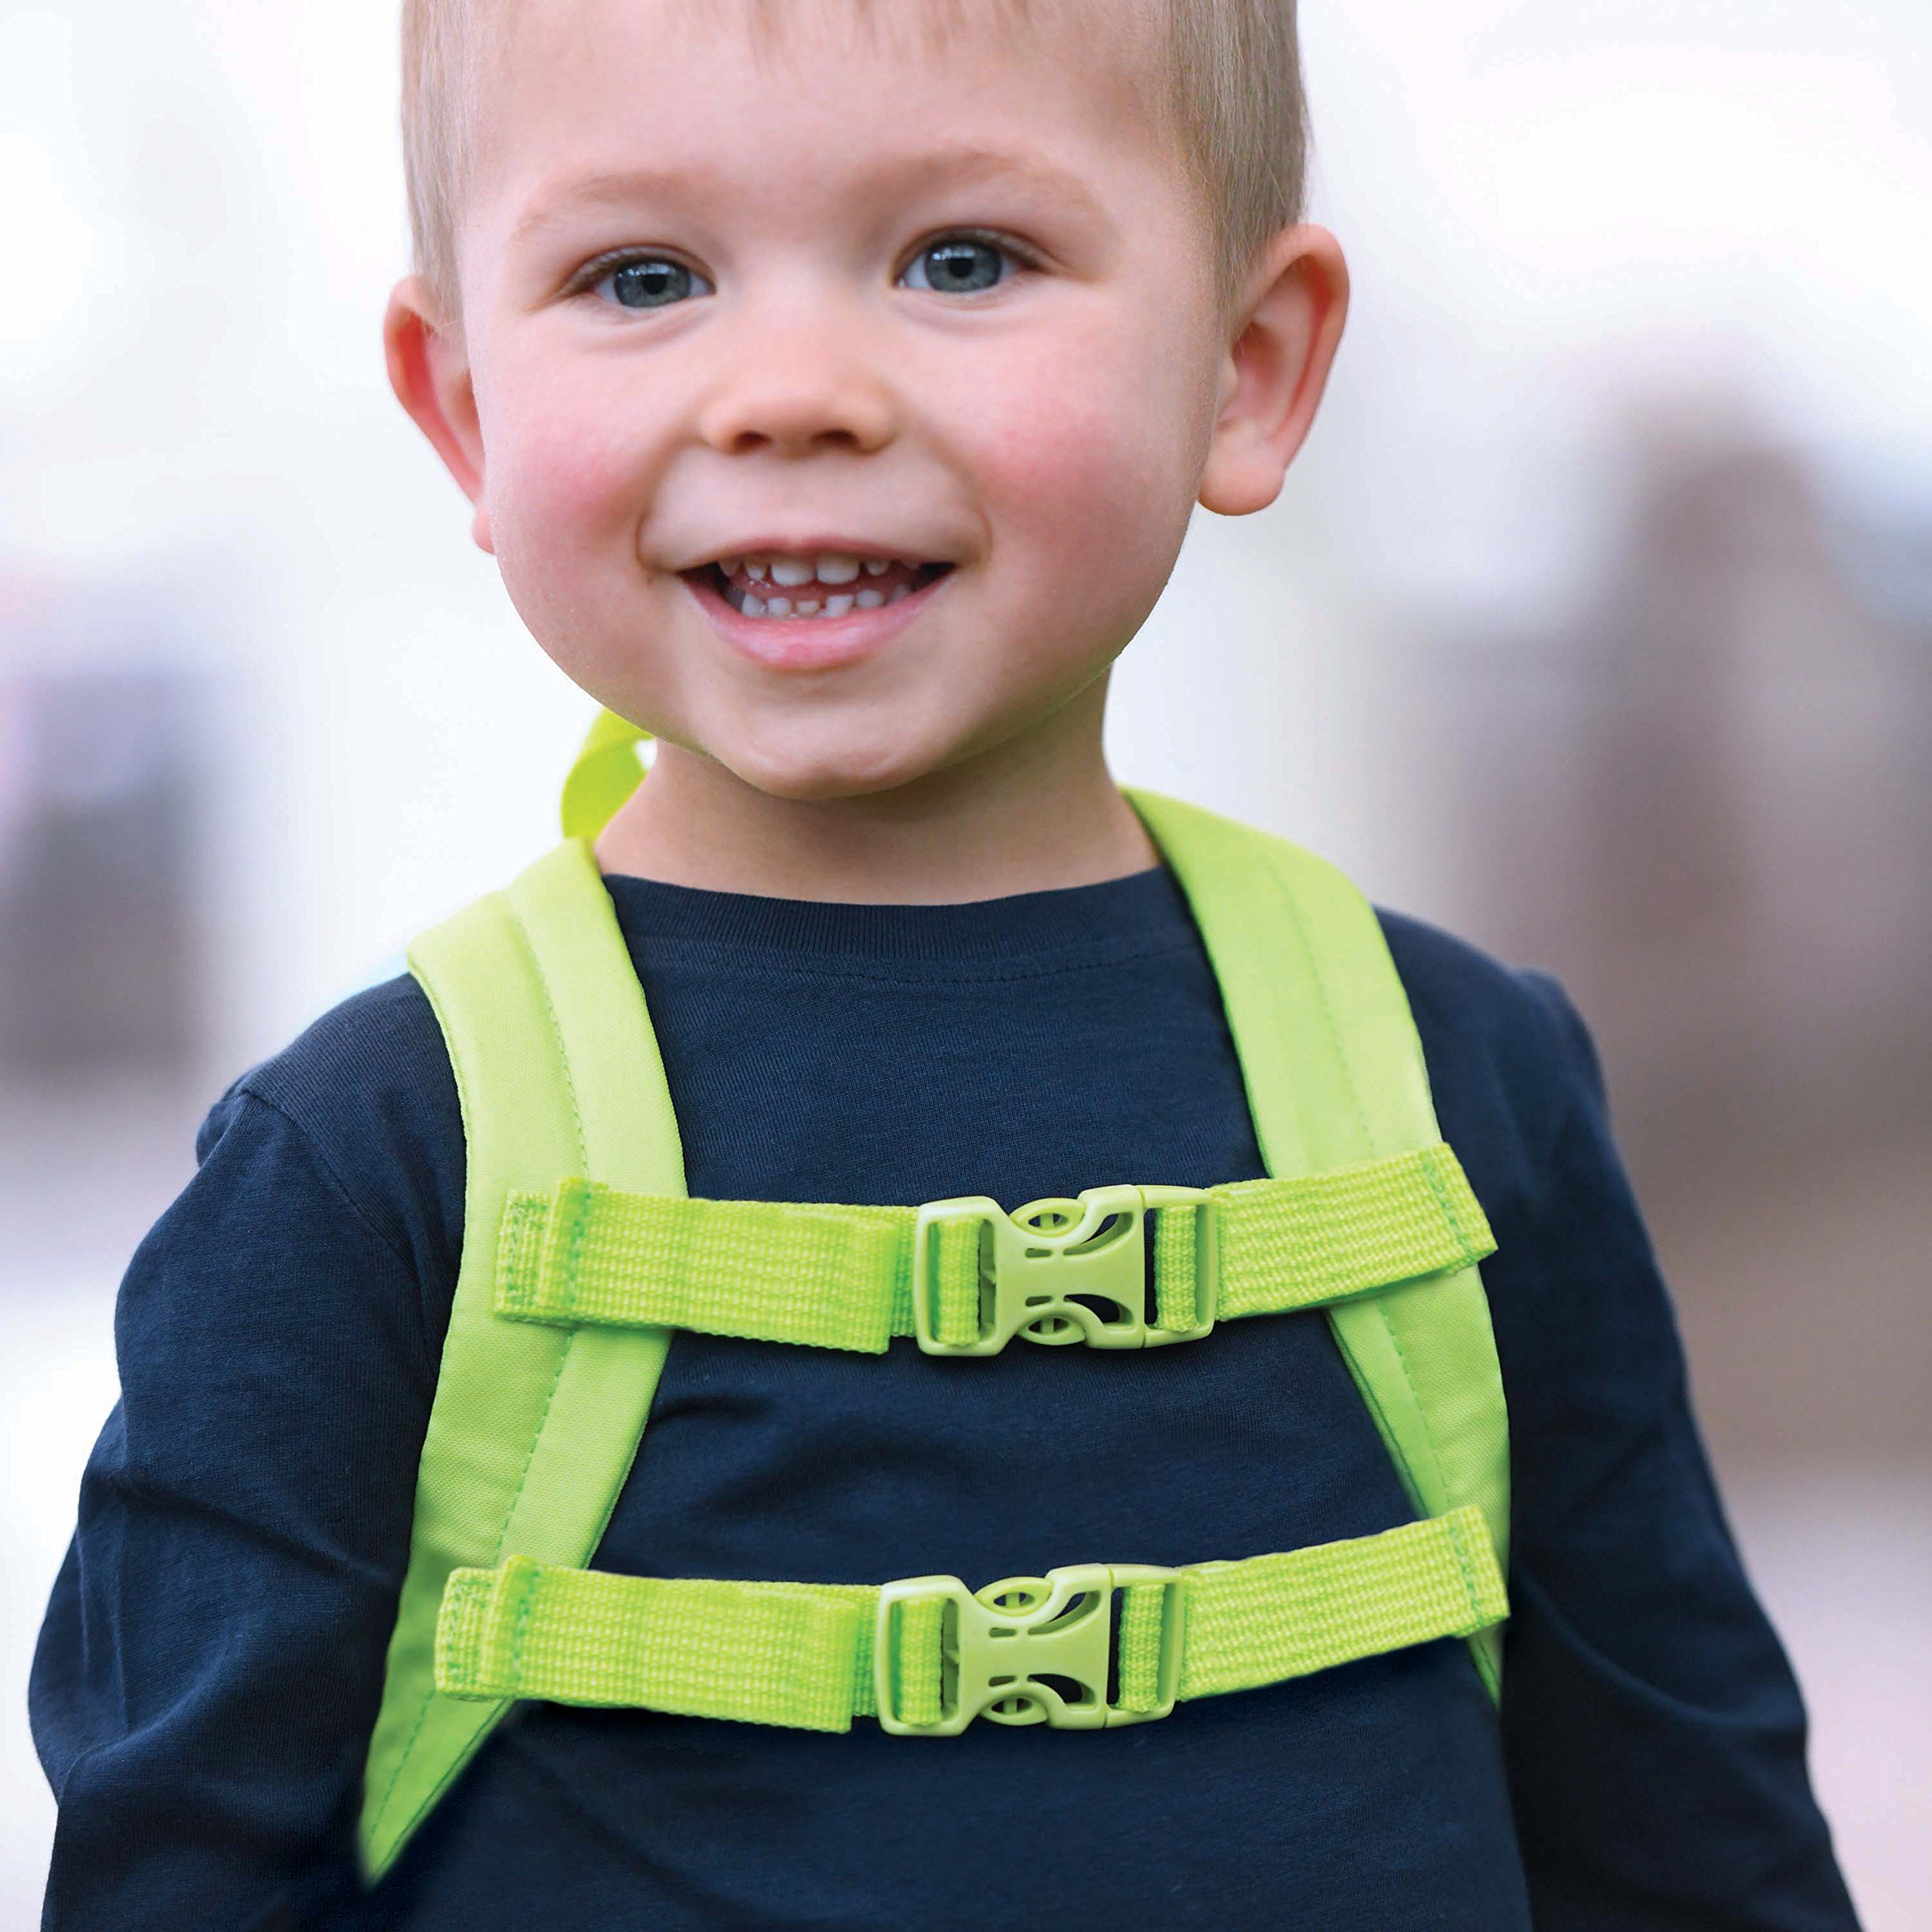 Travel Bug Toddler Safety Dinosaur Backpack Harness with Removable Tether, Teal/Grey by Travel Bug (Image #4)